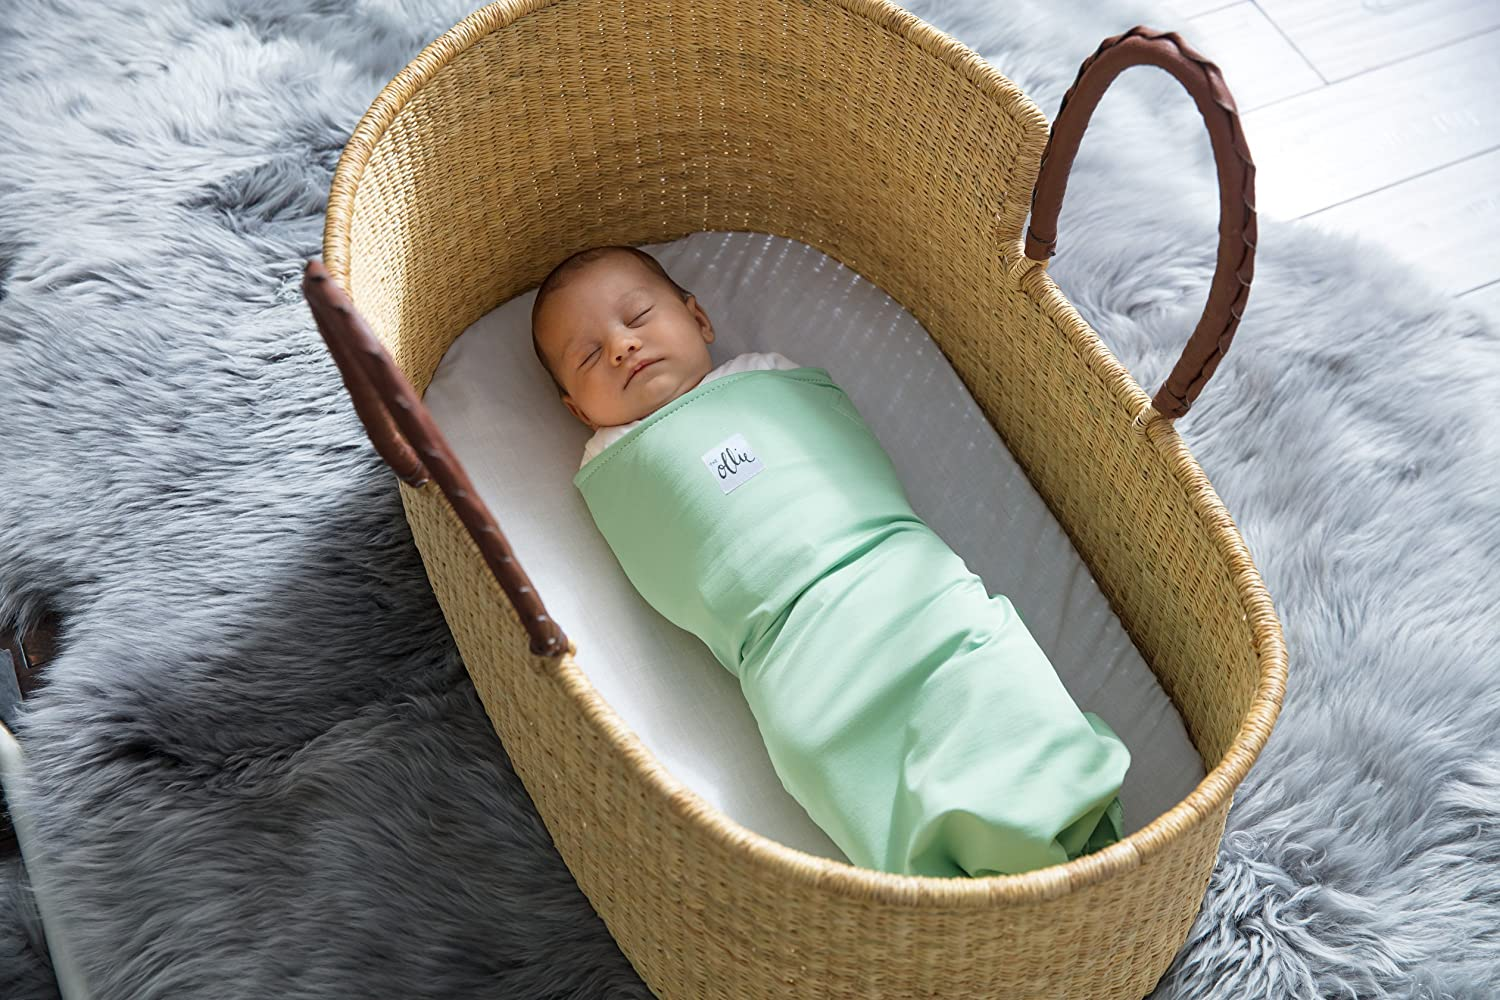 Startle The Ollie Swaddle Sky - Helps to Reduce The Moro Reflex Made from a Custom Designed Moisture-Wicking Material